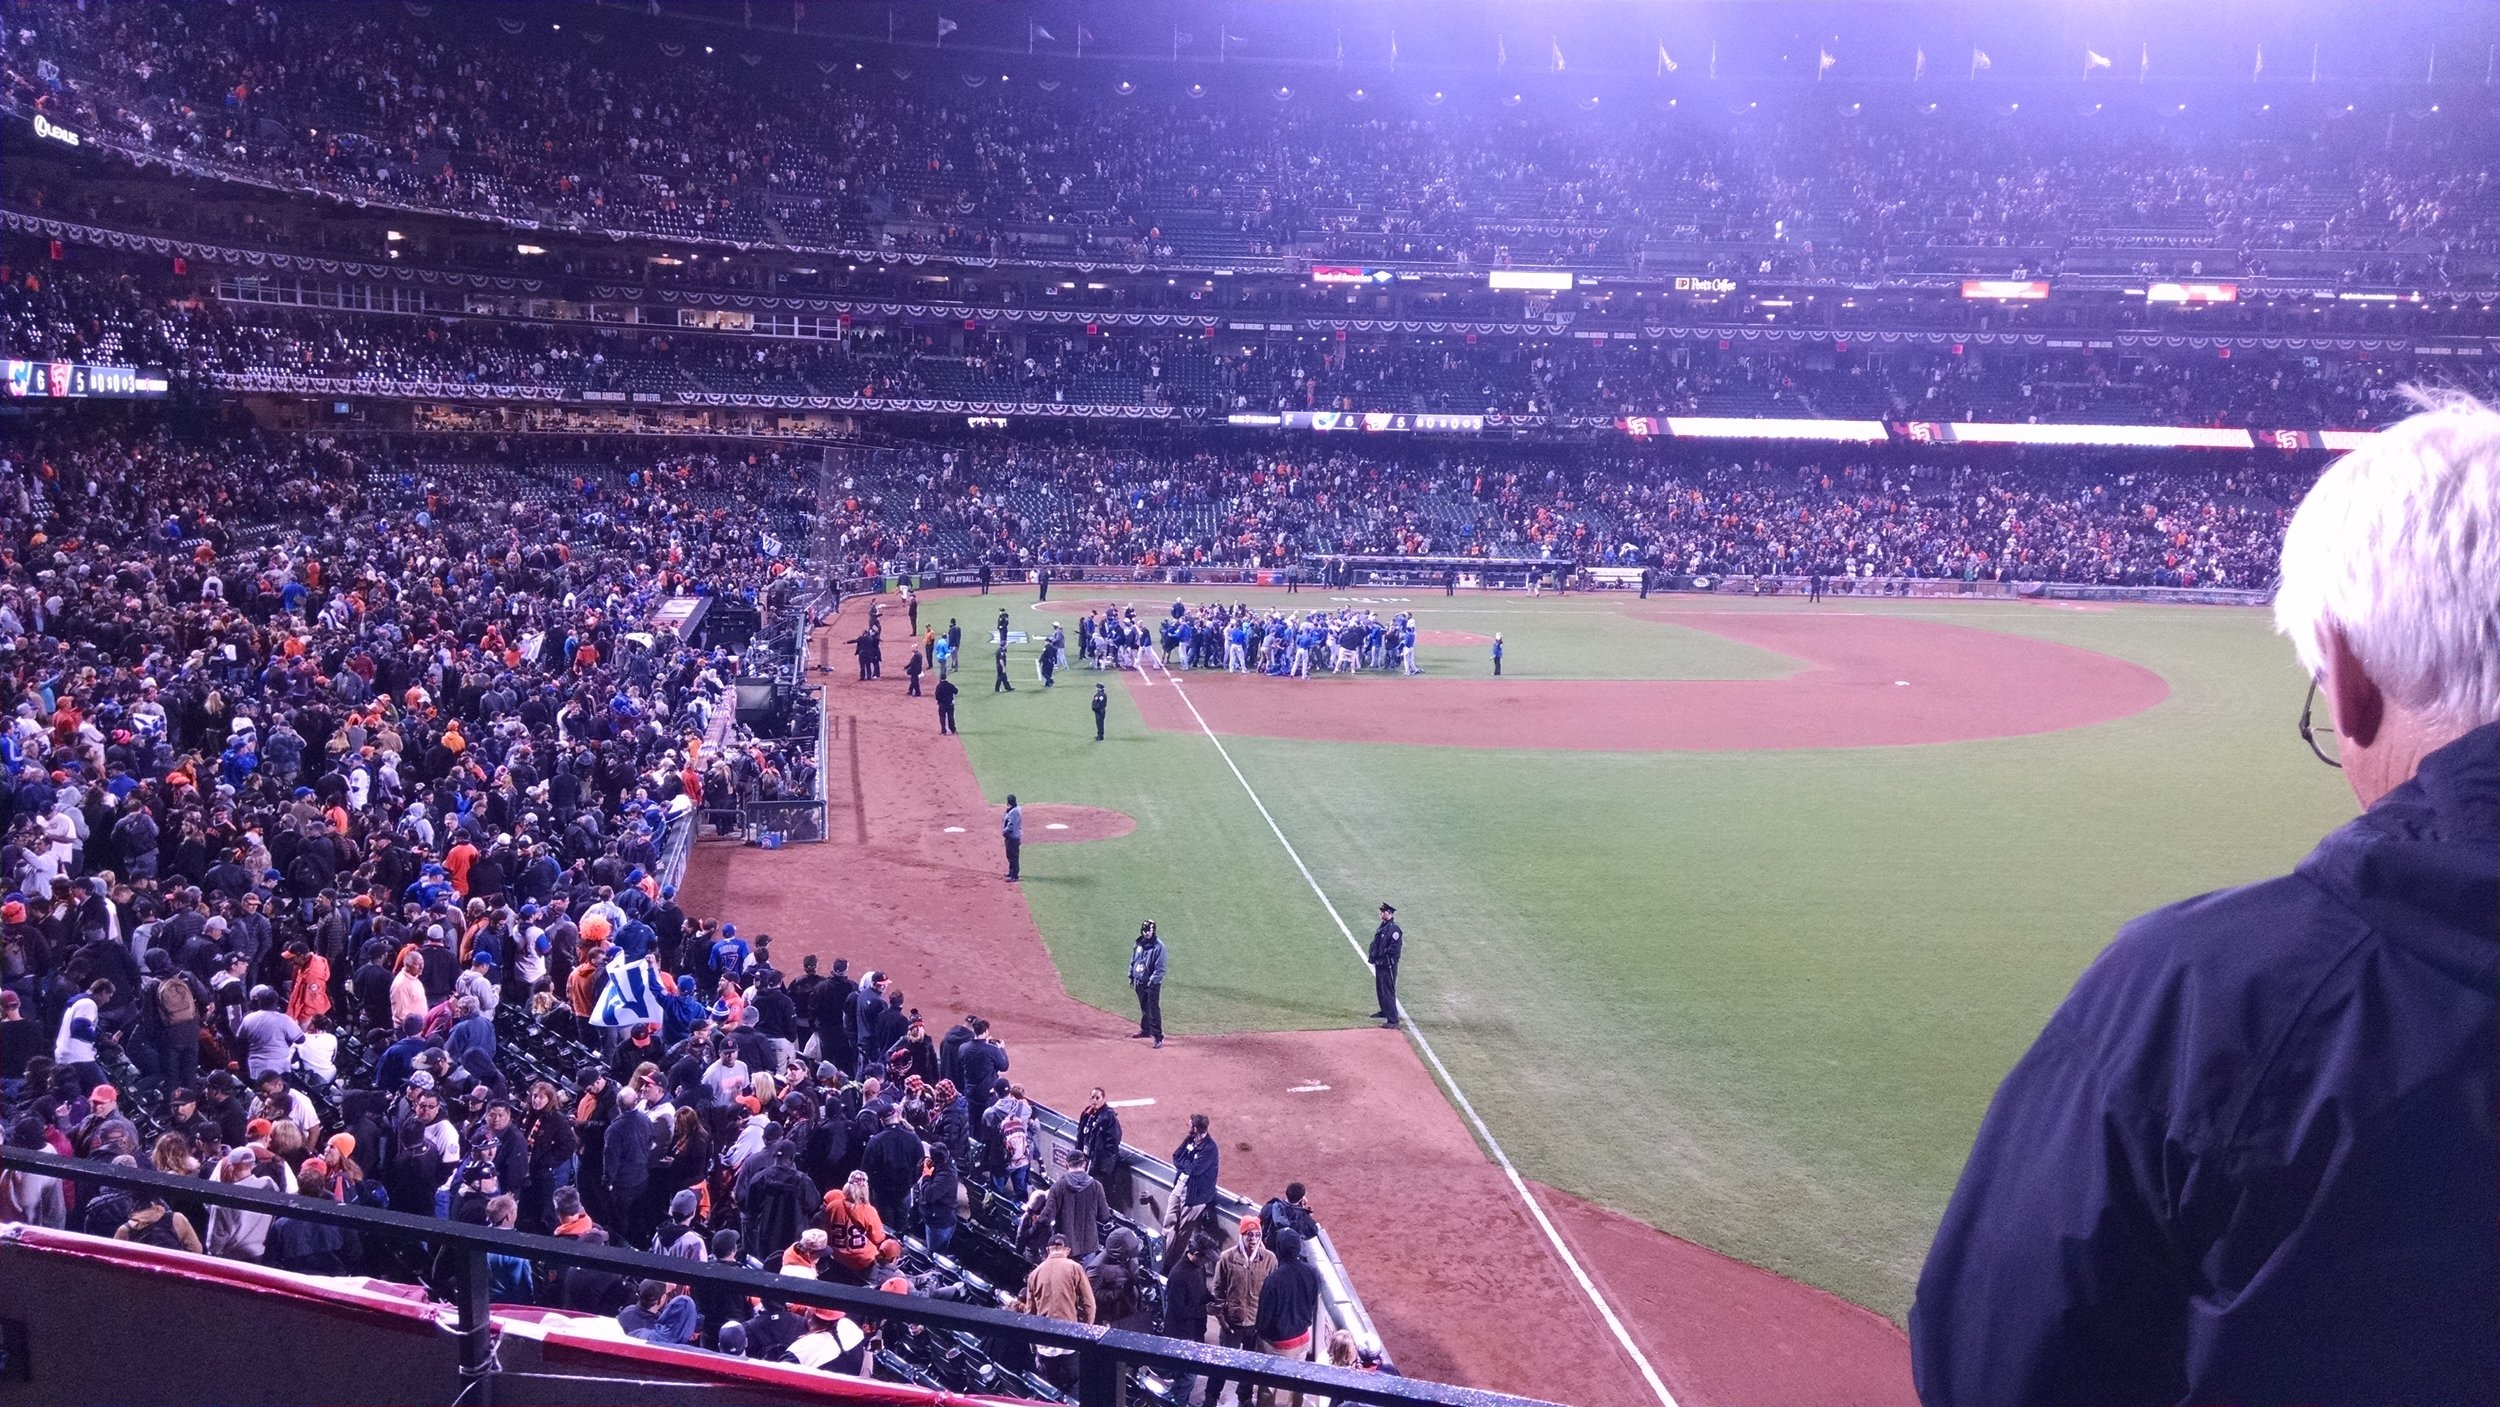 Cubs Clinching a berth in the Championship Series here at At&T Park 10/11/16.... Their last Celebration in 2016???